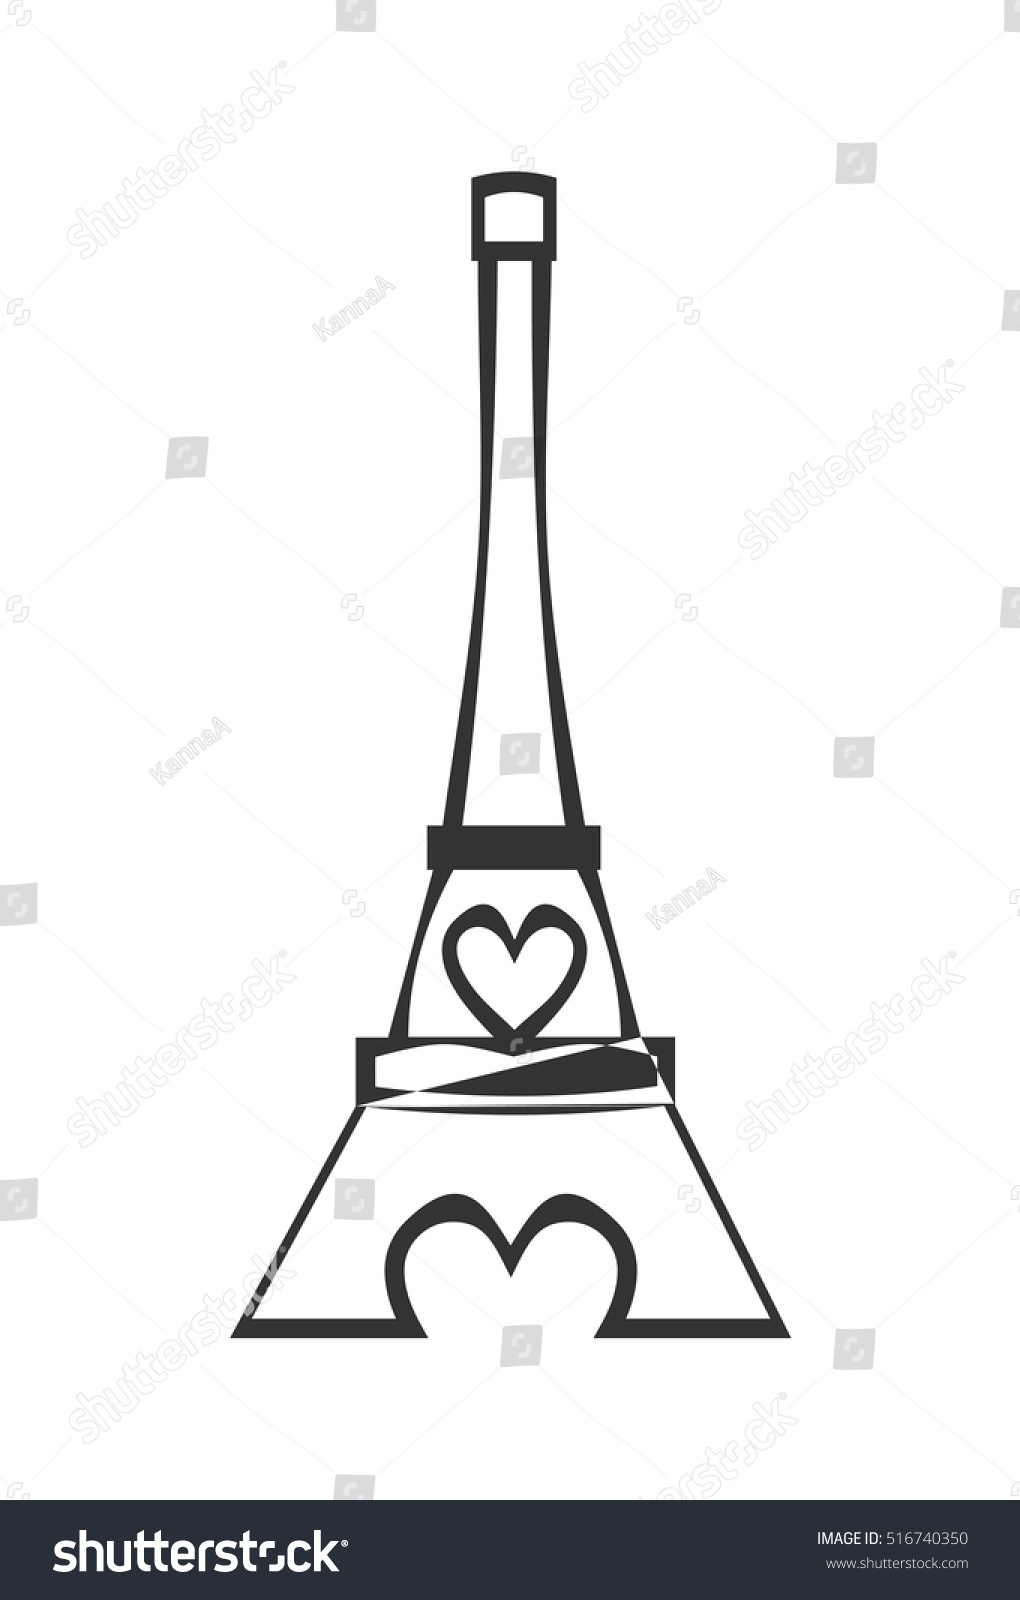 Heart Shape Balloon Black and White Stock Photos & Images - Alamy